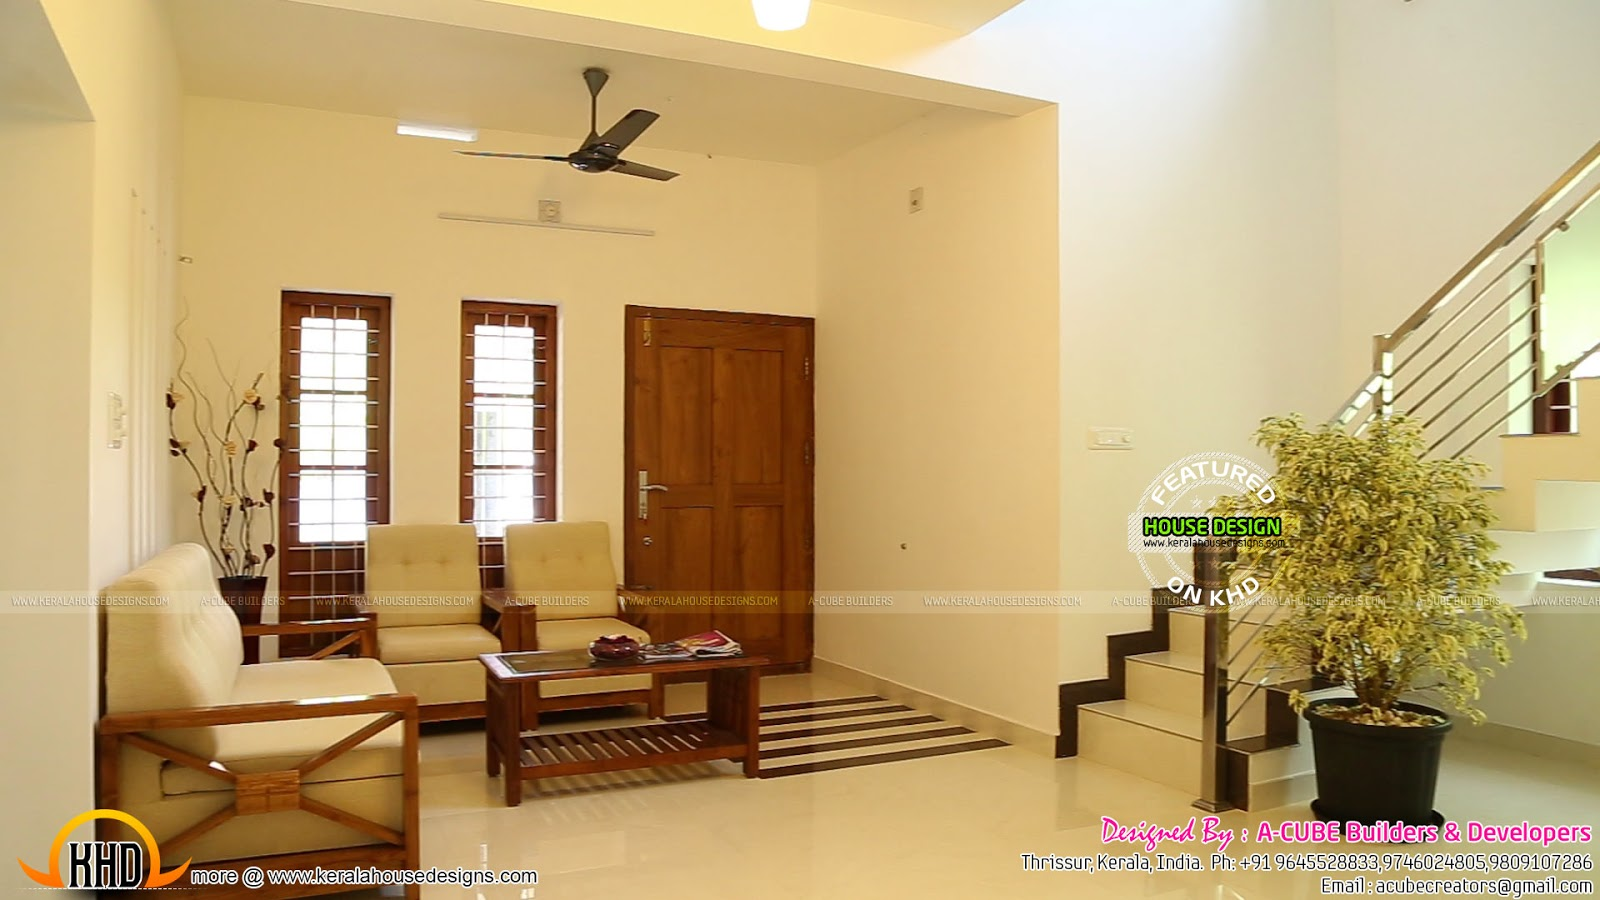 living room new home plans interior | New House Plans for 2016 starts here - Kerala home design ...